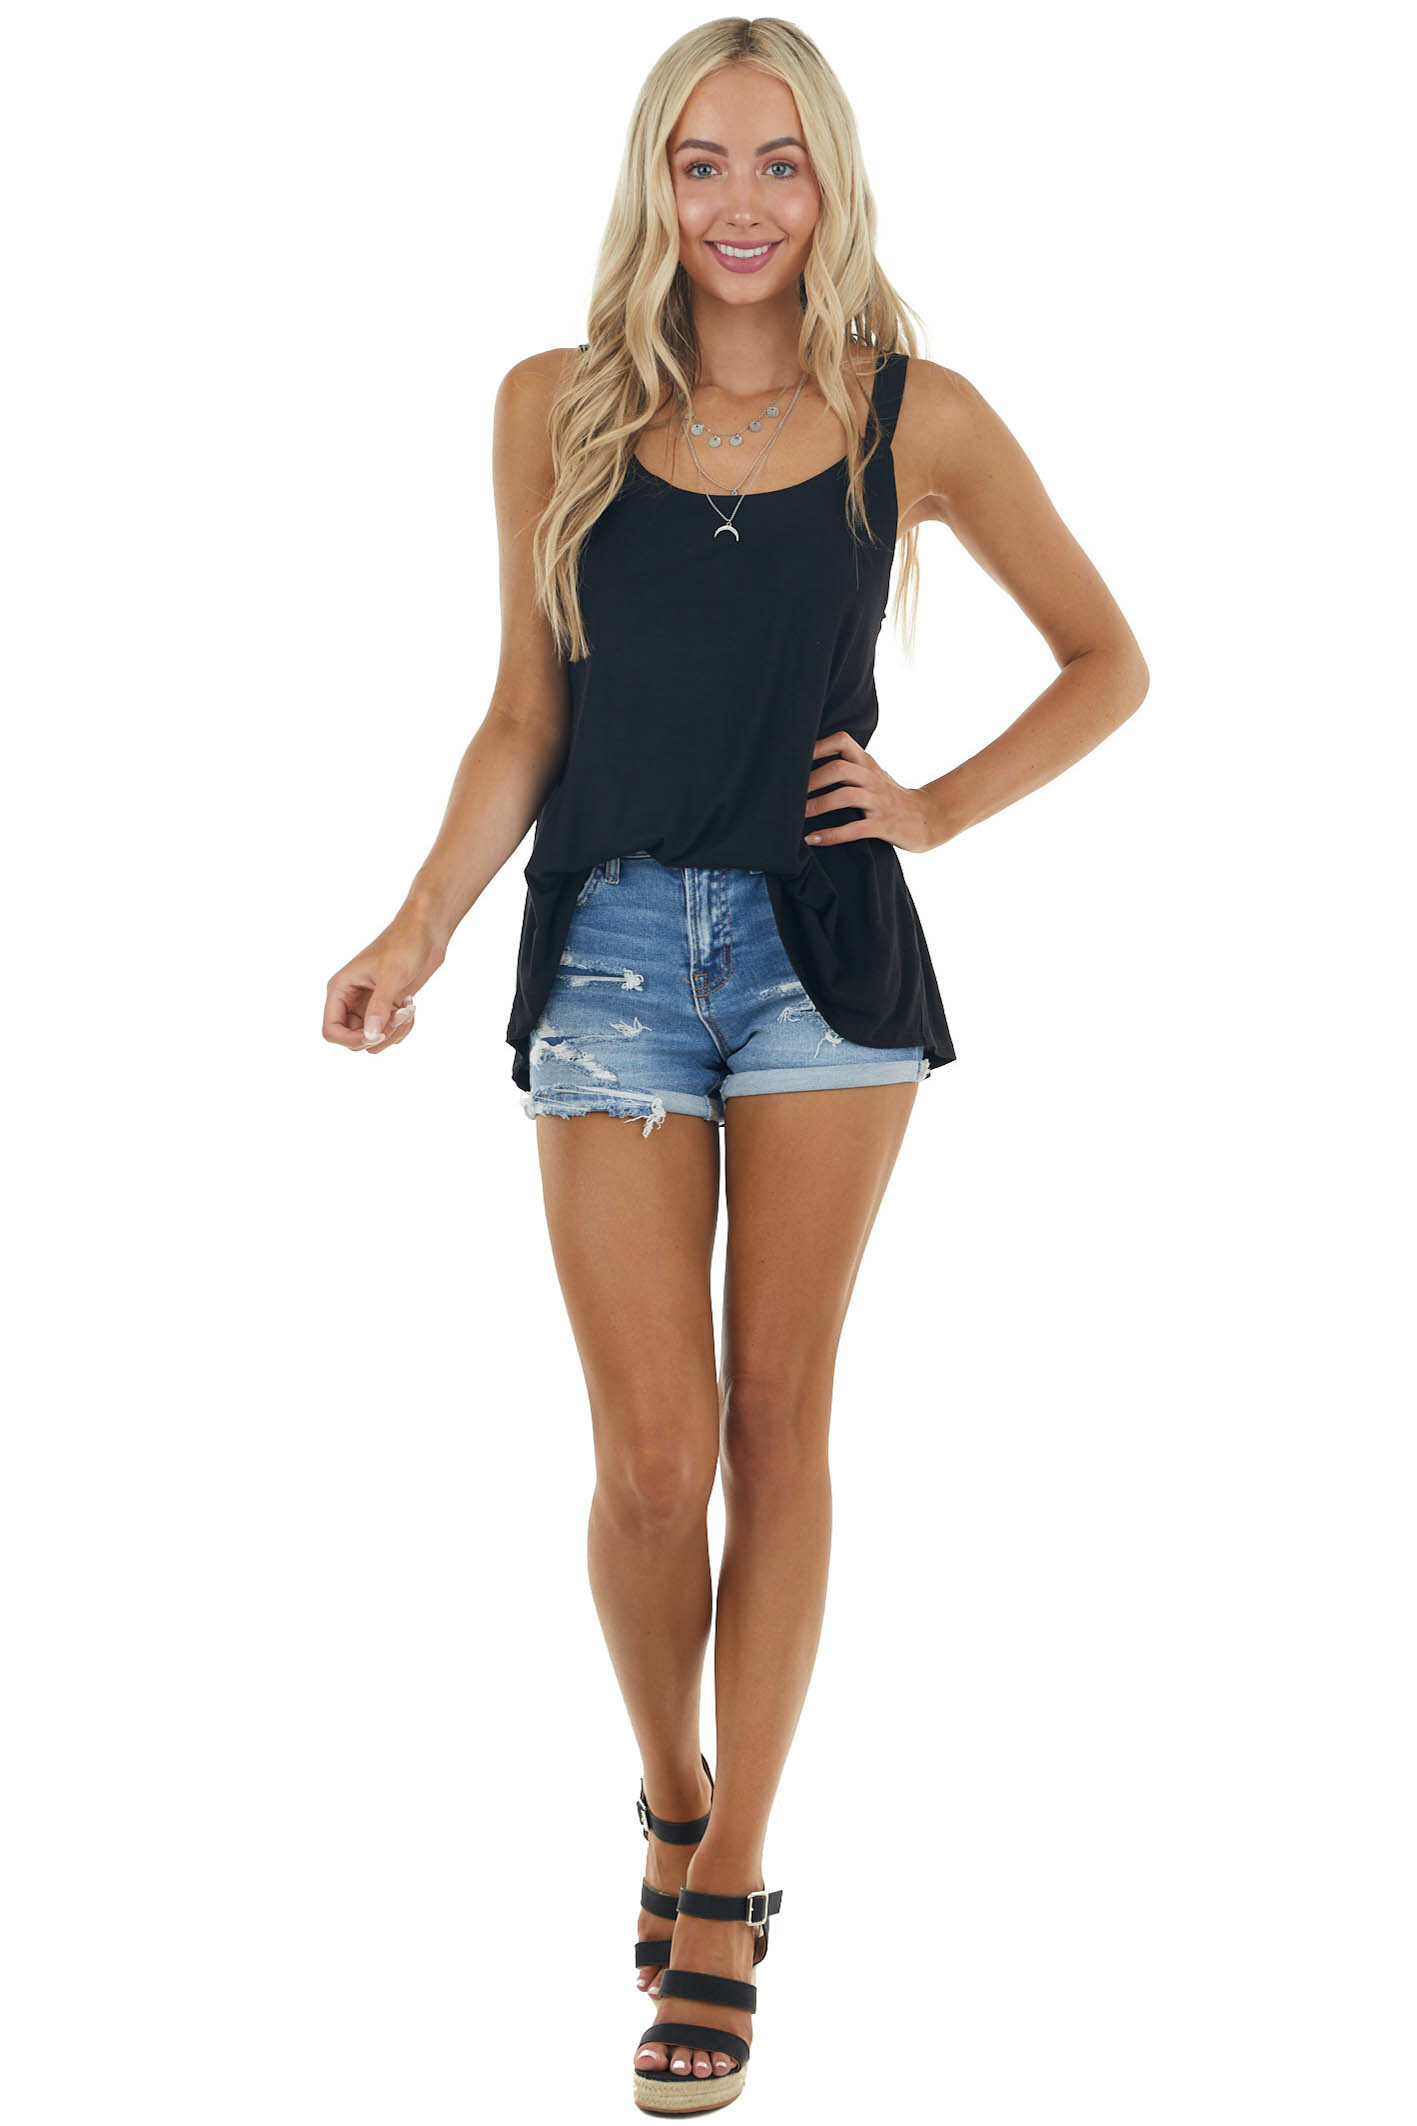 Black Soft Stretchy Knit Tank Top with Thick Straps